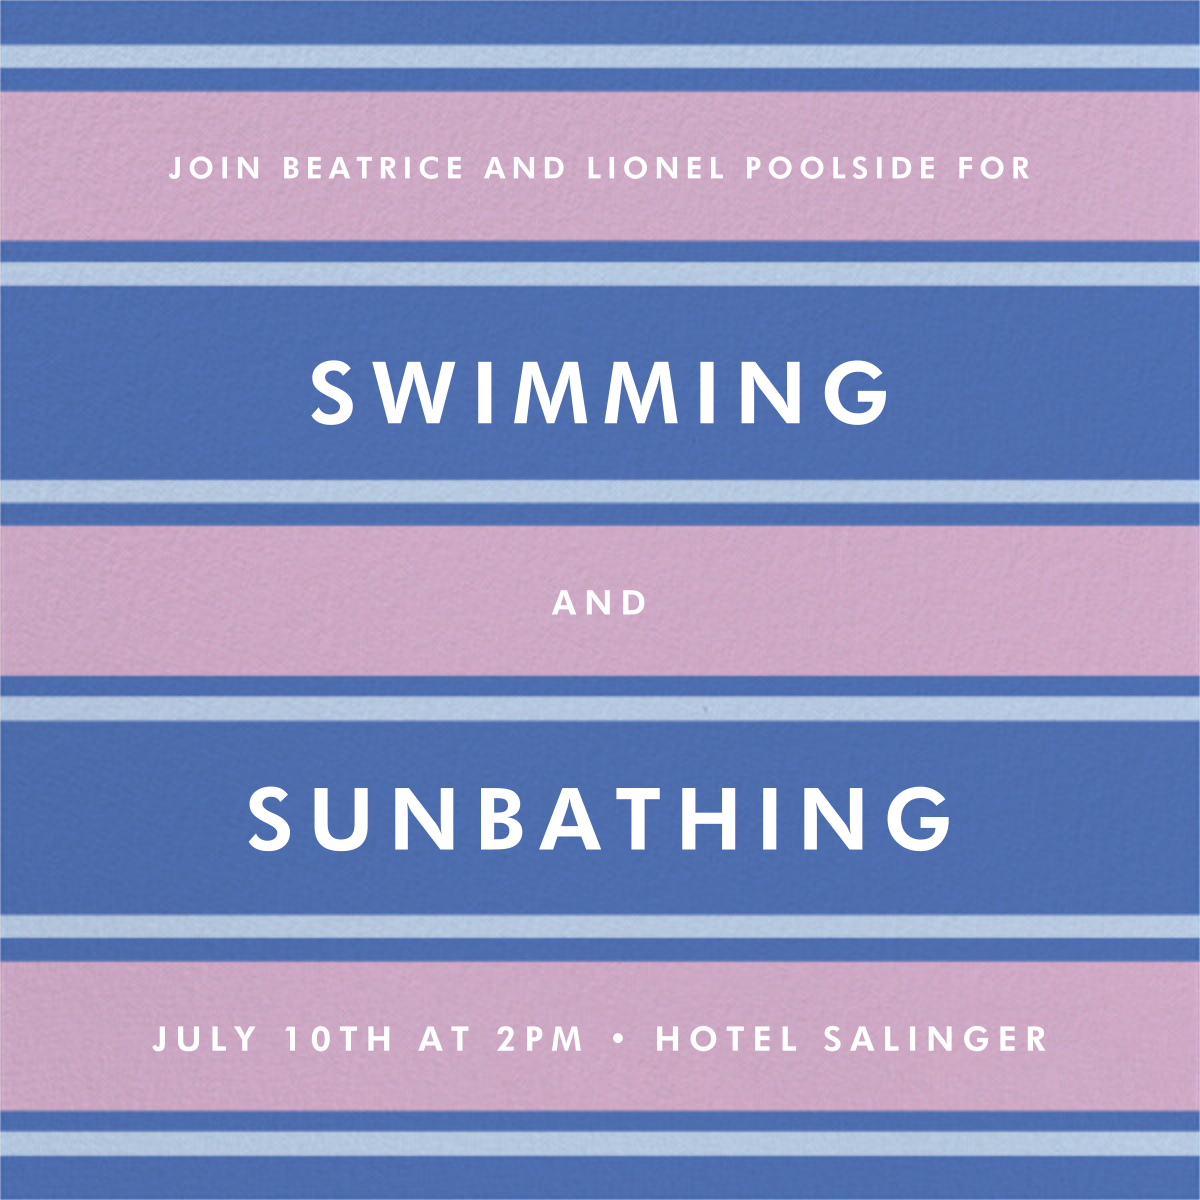 Montauk - Antwerp - kate spade new york - Pool party